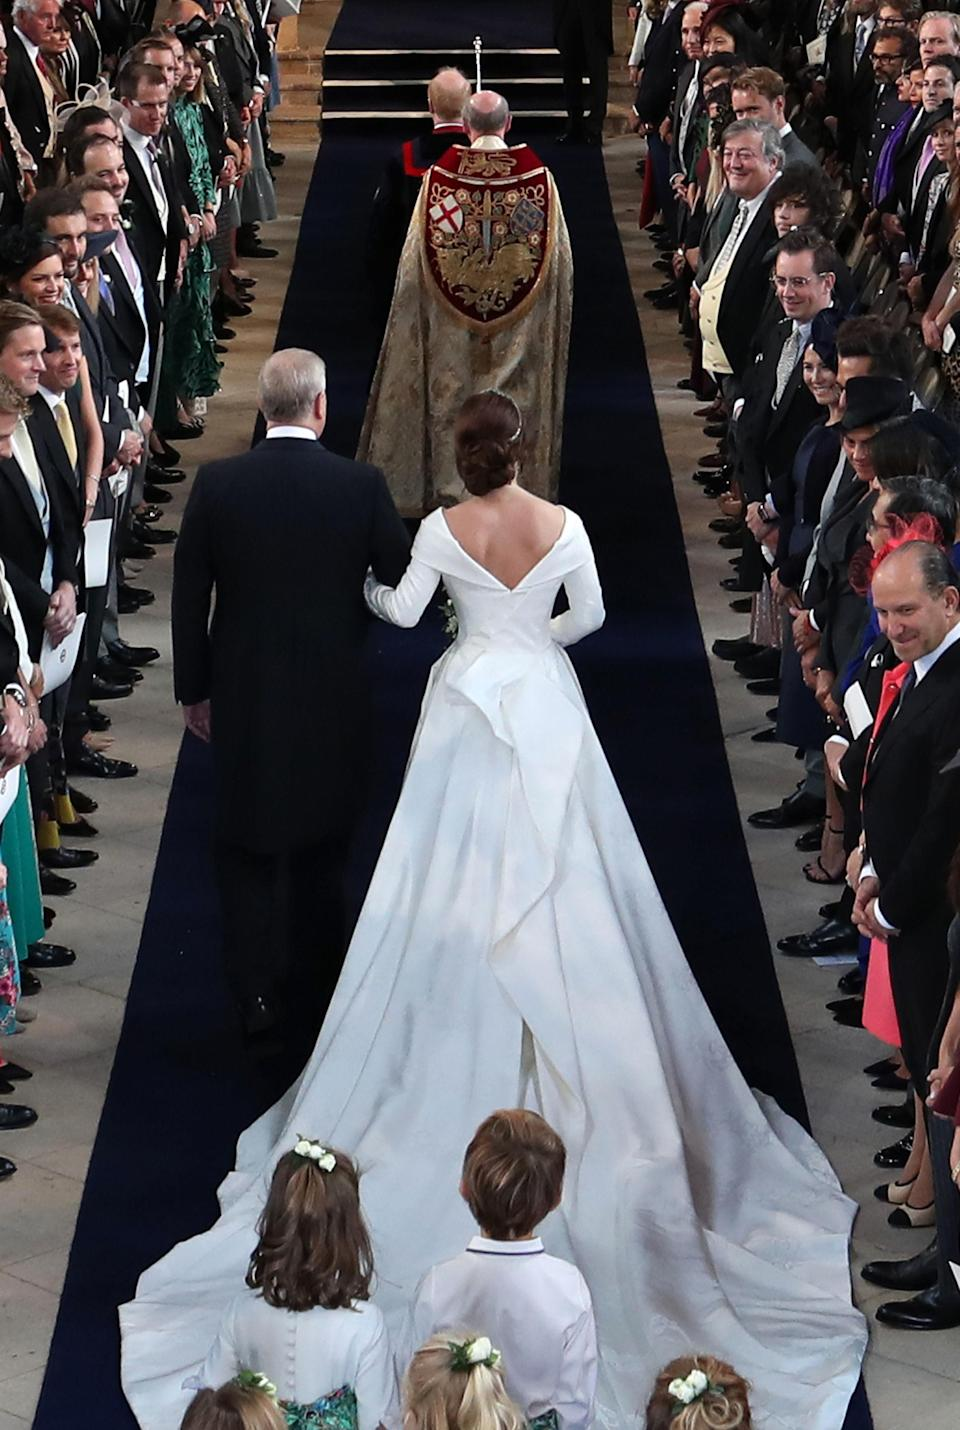 A closer look at Princess Eugenie's wedding gown as she walks down the aisle at St George's Chapel [Photo: PA]